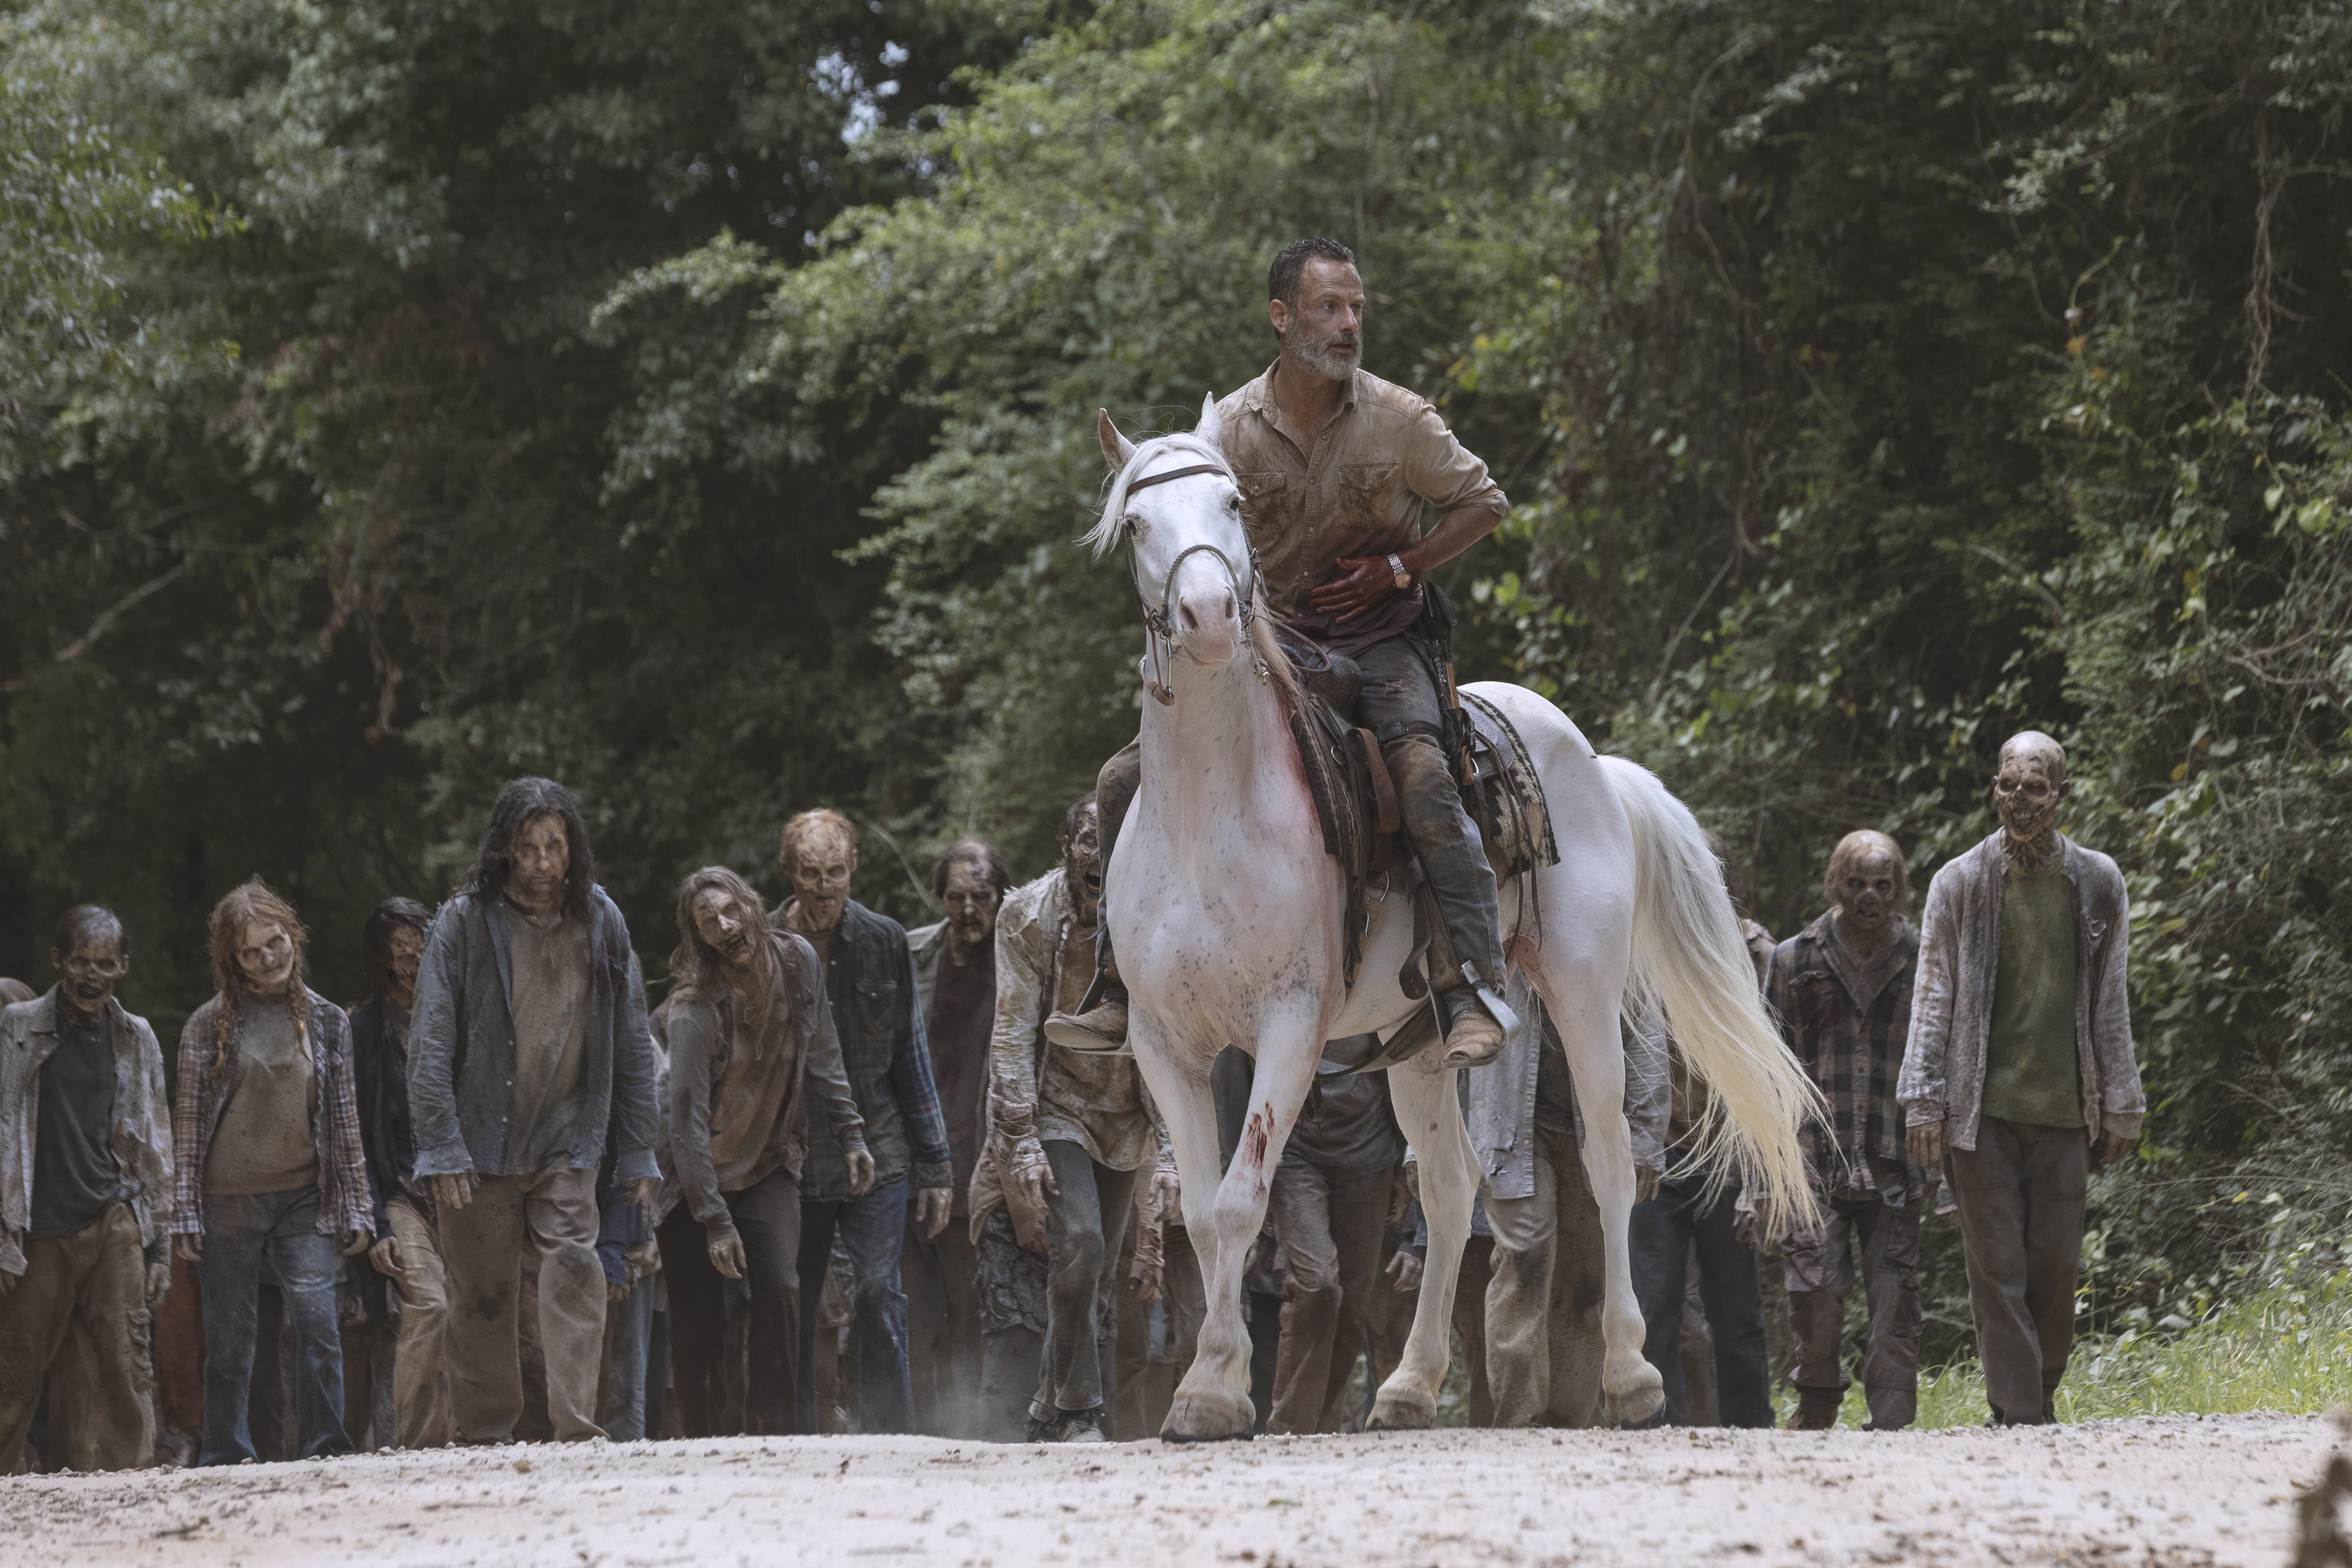 Andrew Lincoln as Rick Grimes - The Walking Dead Season 9, Episode 5